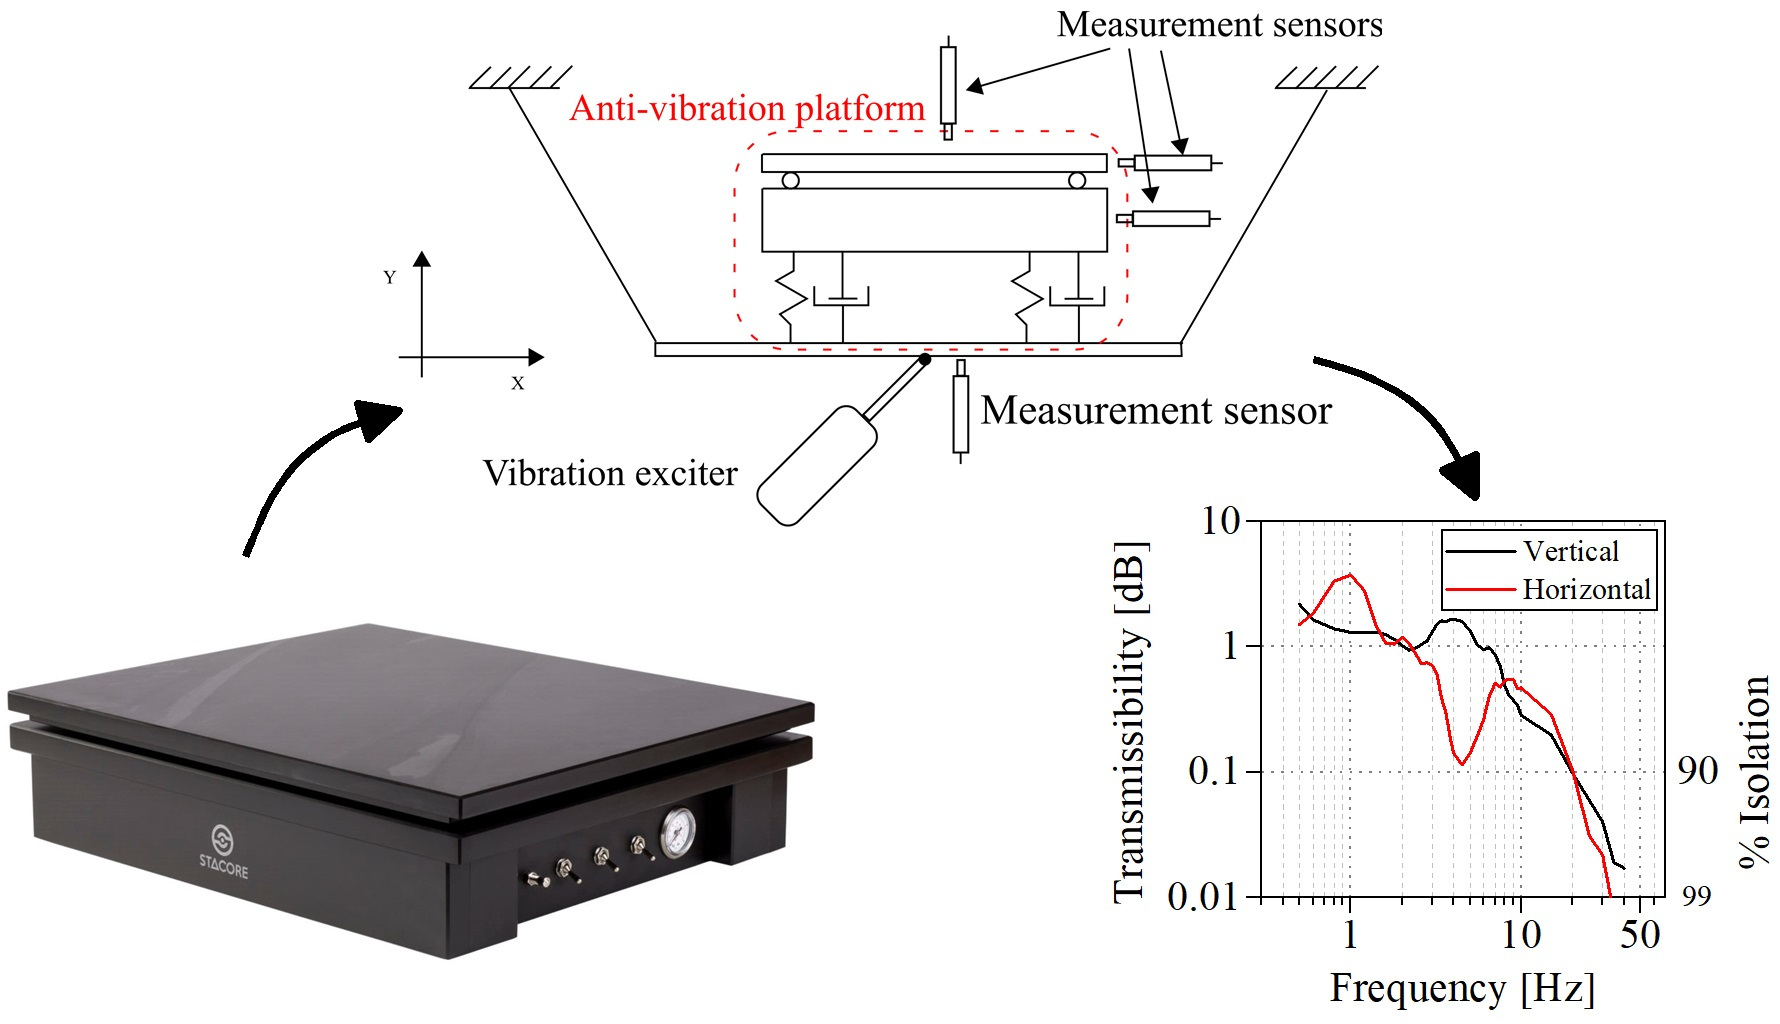 Vibration damping of the anti-vibration platform intended for use in combination with audio/music devices